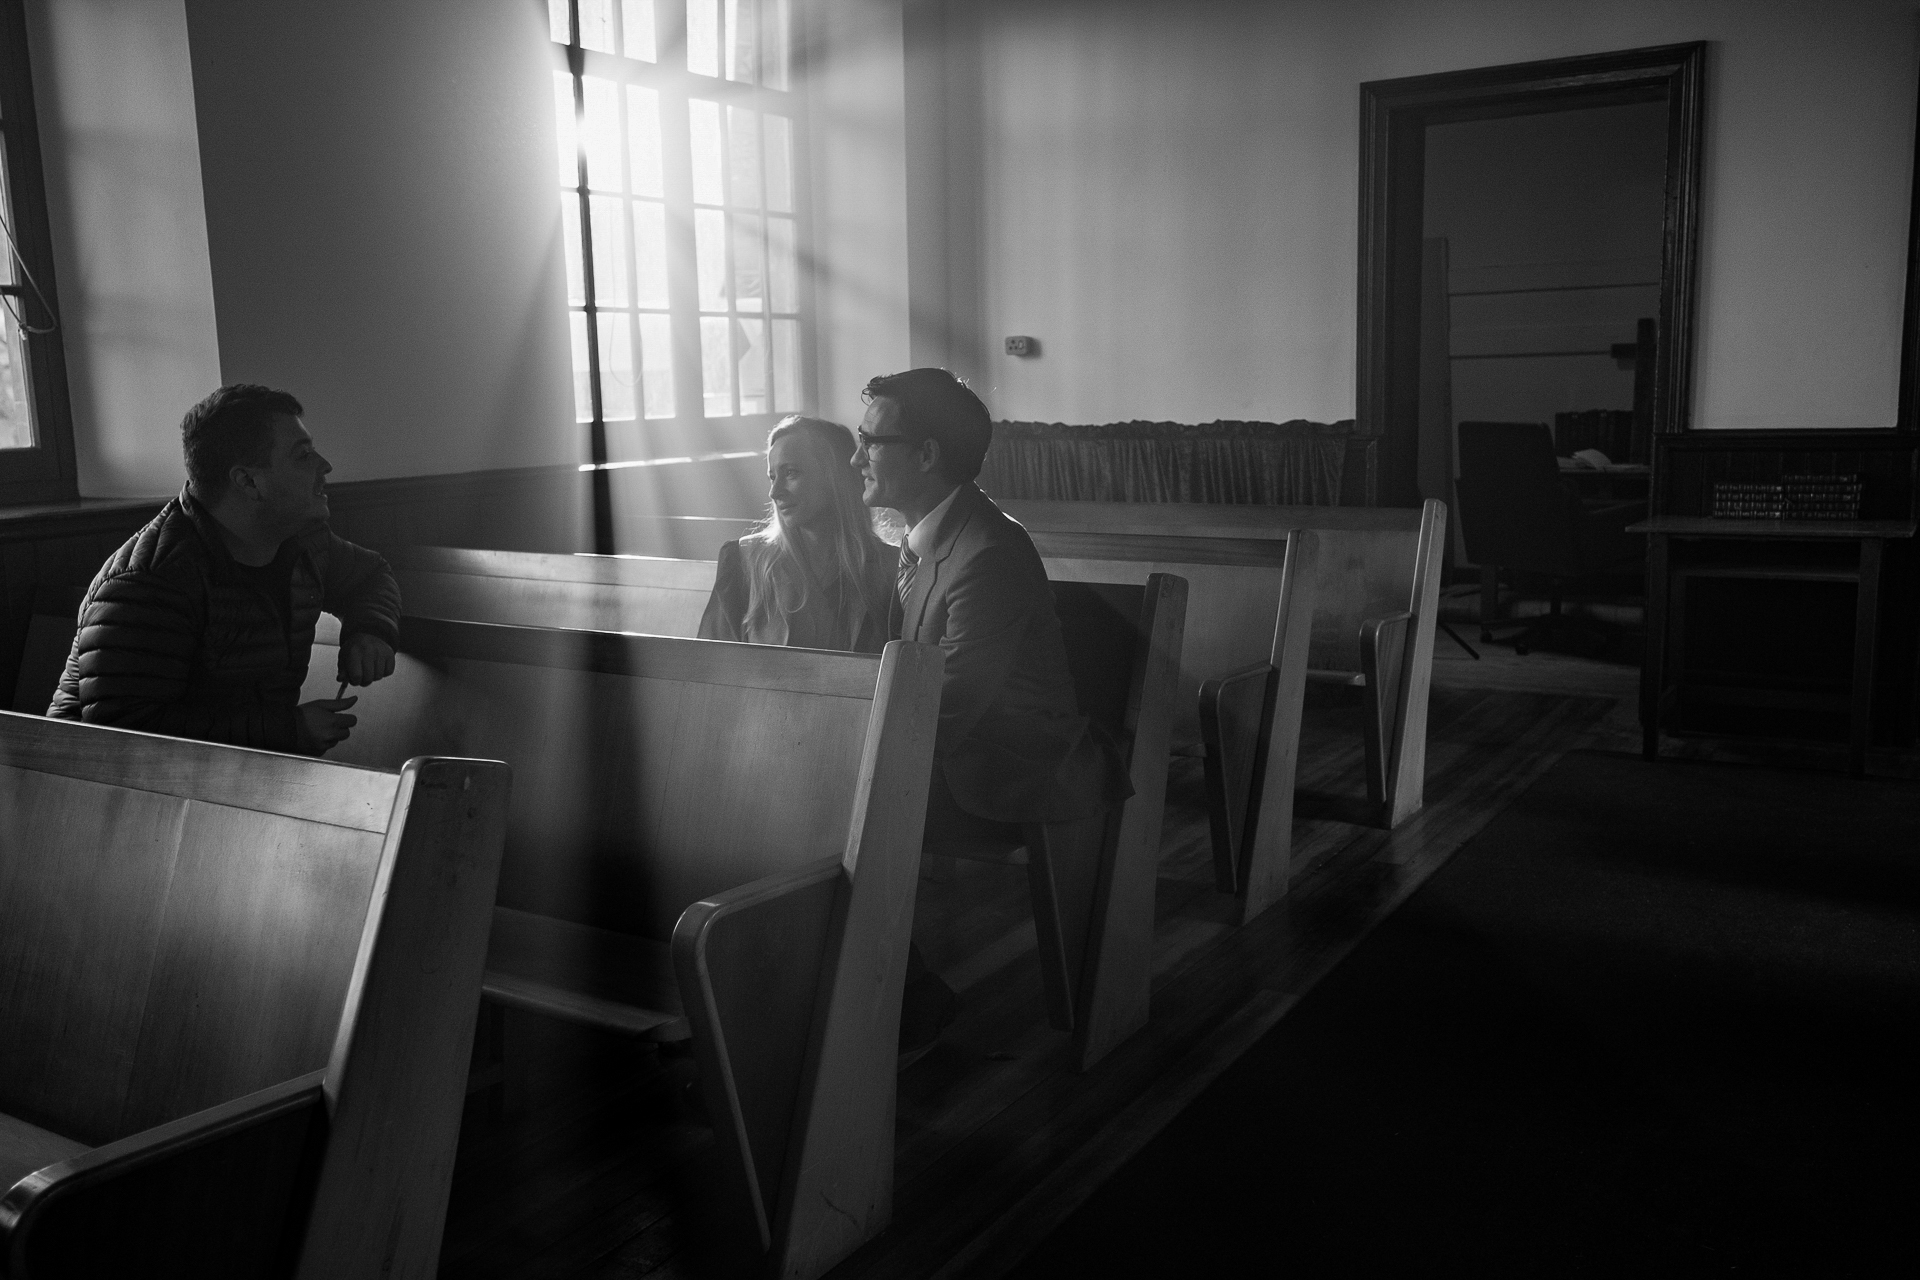 AM3; B6; Day 01 of 06; Sc S31; West Side Church: Doris (NIAKHAI SVIATLANA) and Charles (SCOTT GEORGE) kiss and sit on the pews. Doris agrees to lend Charles money.